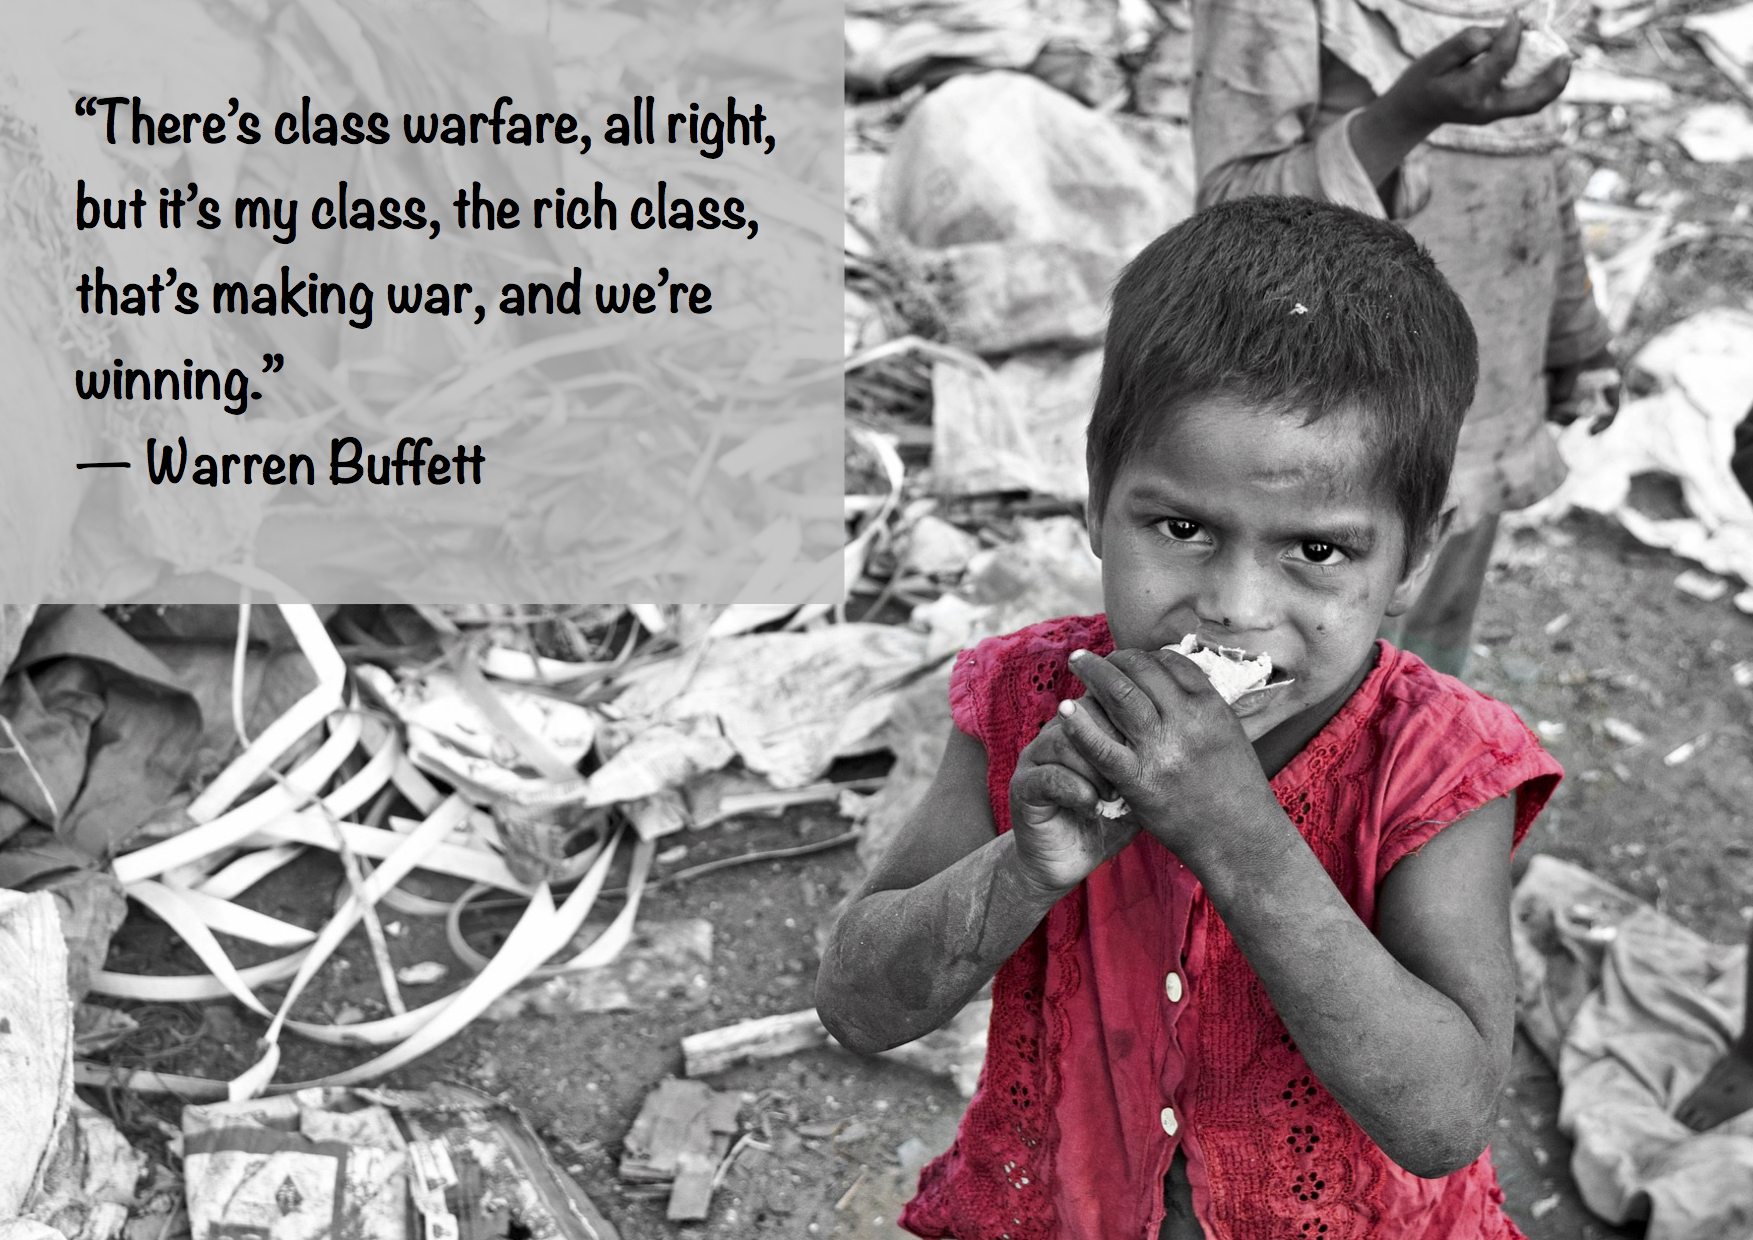 "Citat af Warren Buffet: ""There's class warfare, all right, but it's my class, the rich class, that's making war, and we're winning."" Originalfoto: pixabay.com. Citatillustration: Maria Busch"